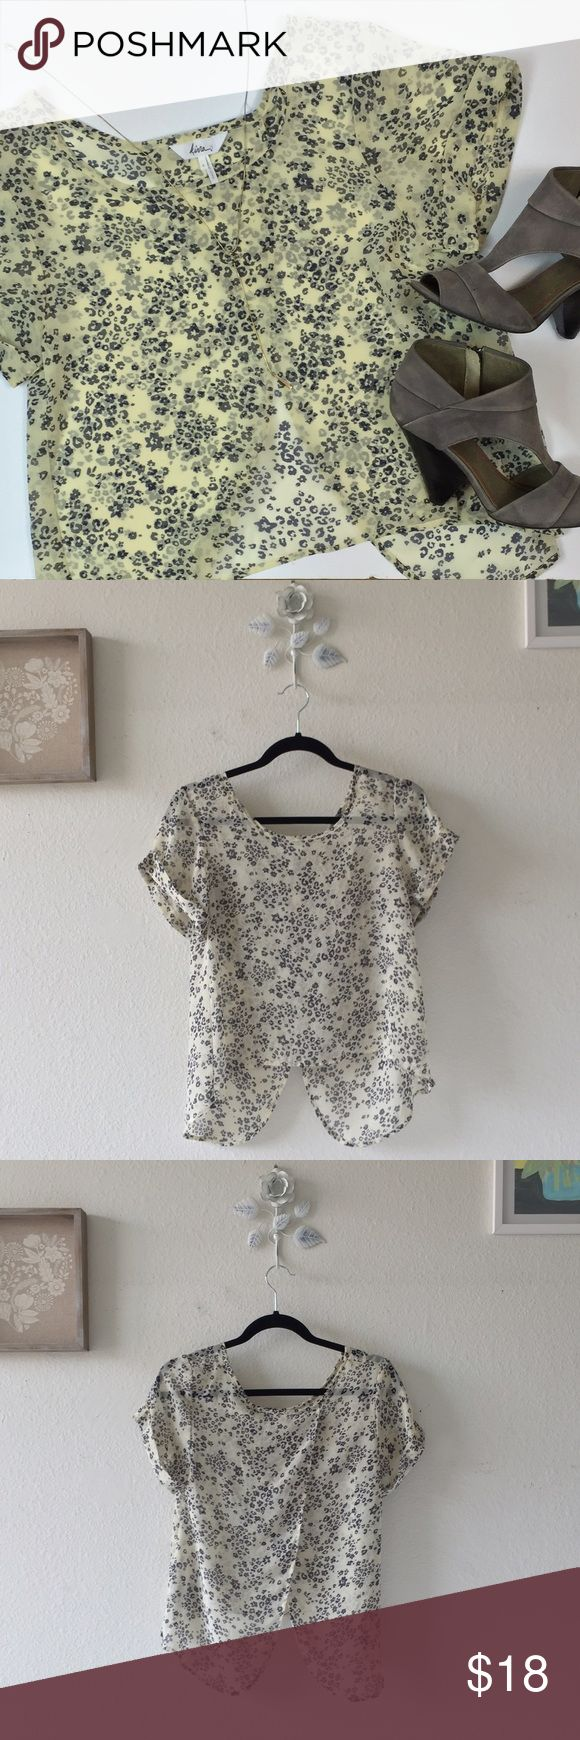 Open Back Print Top Cream short sleeve top with dark navy print. Open flaps in back. Sheer. Shorter in front than back. Cuffed short sleeves. Worn. Good condition. No trades. Kirra Tops Blouses